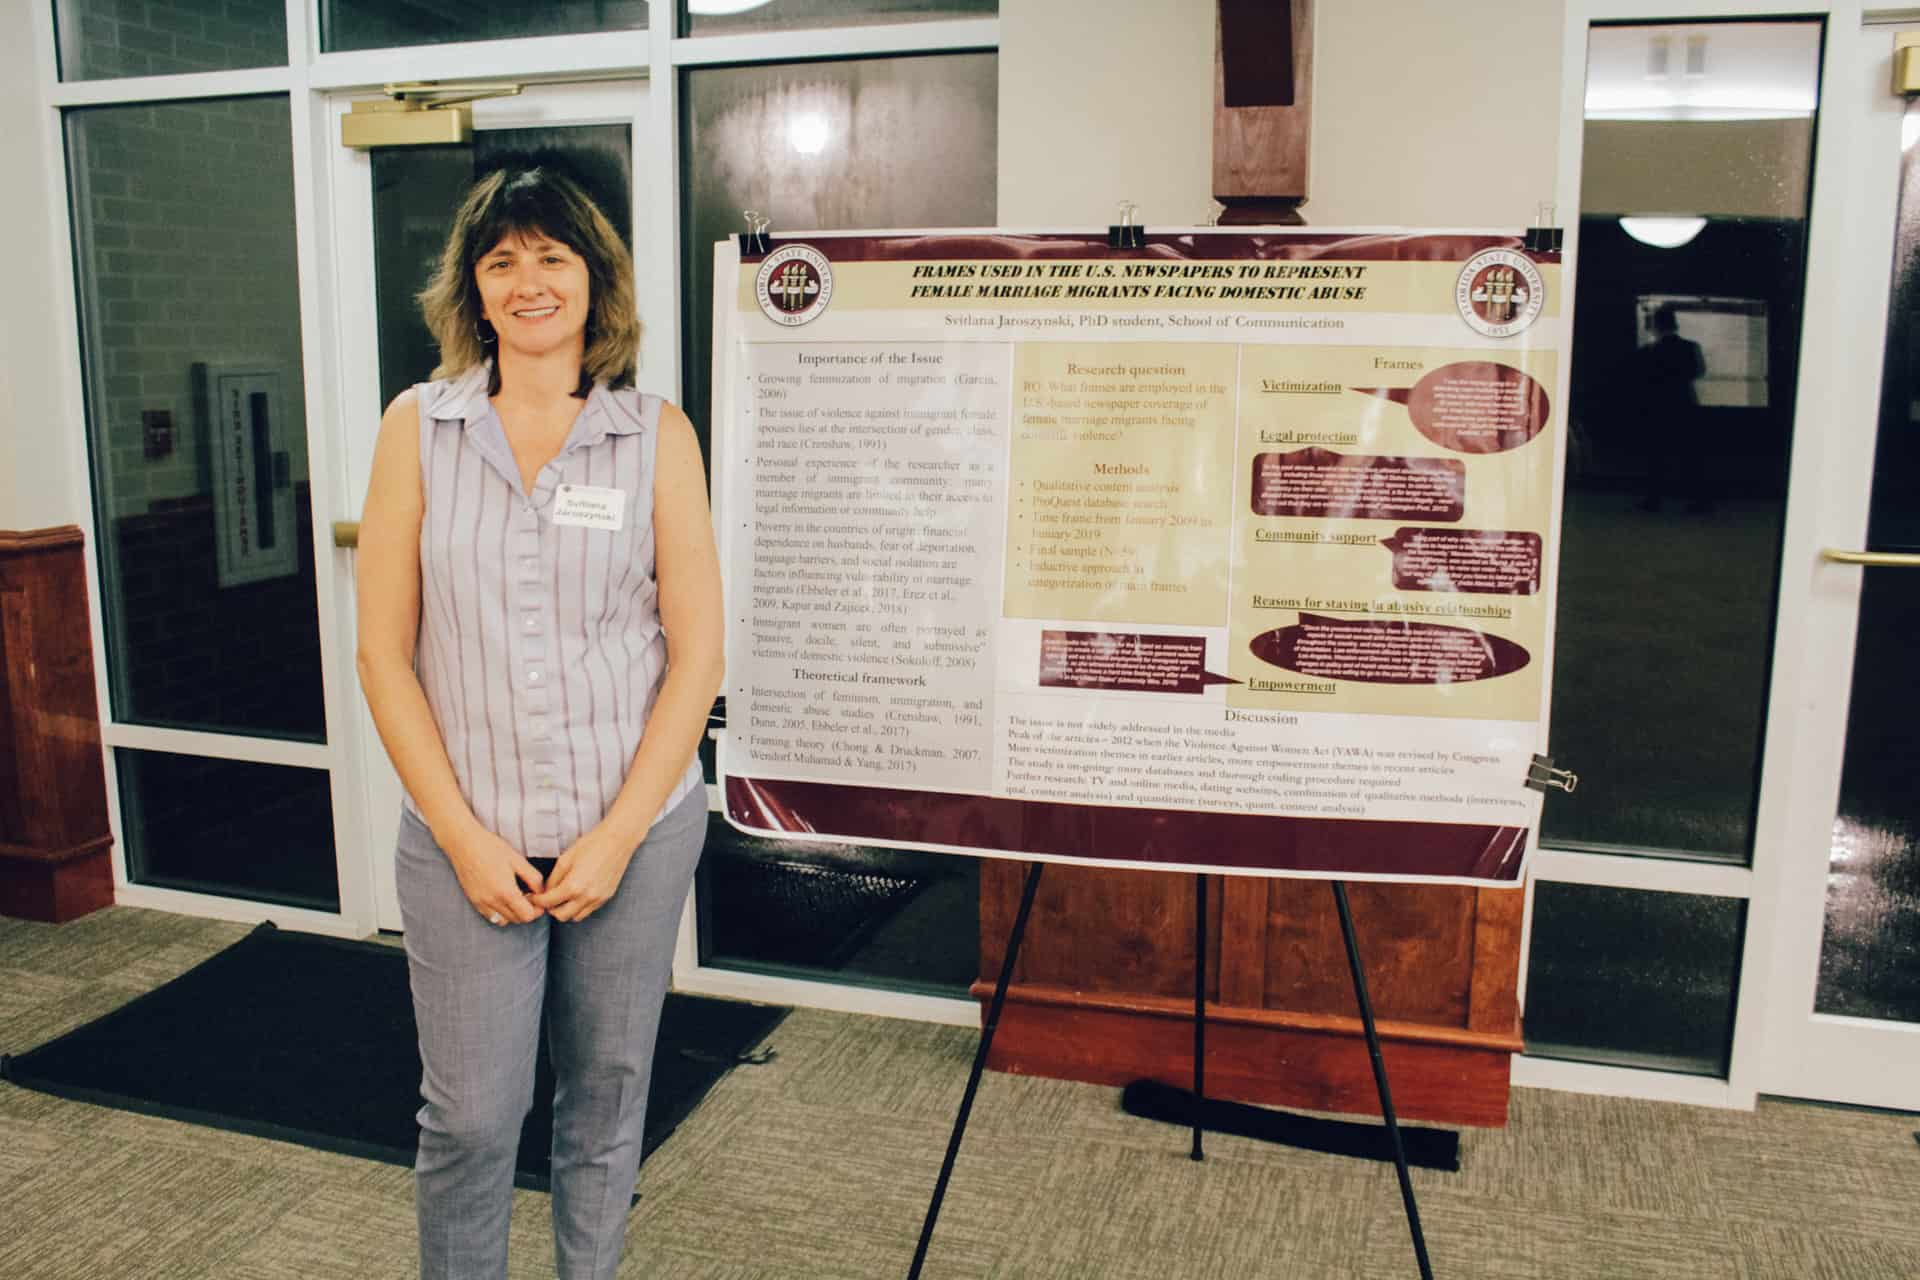 Svitlana Jaroszynski with her research poster